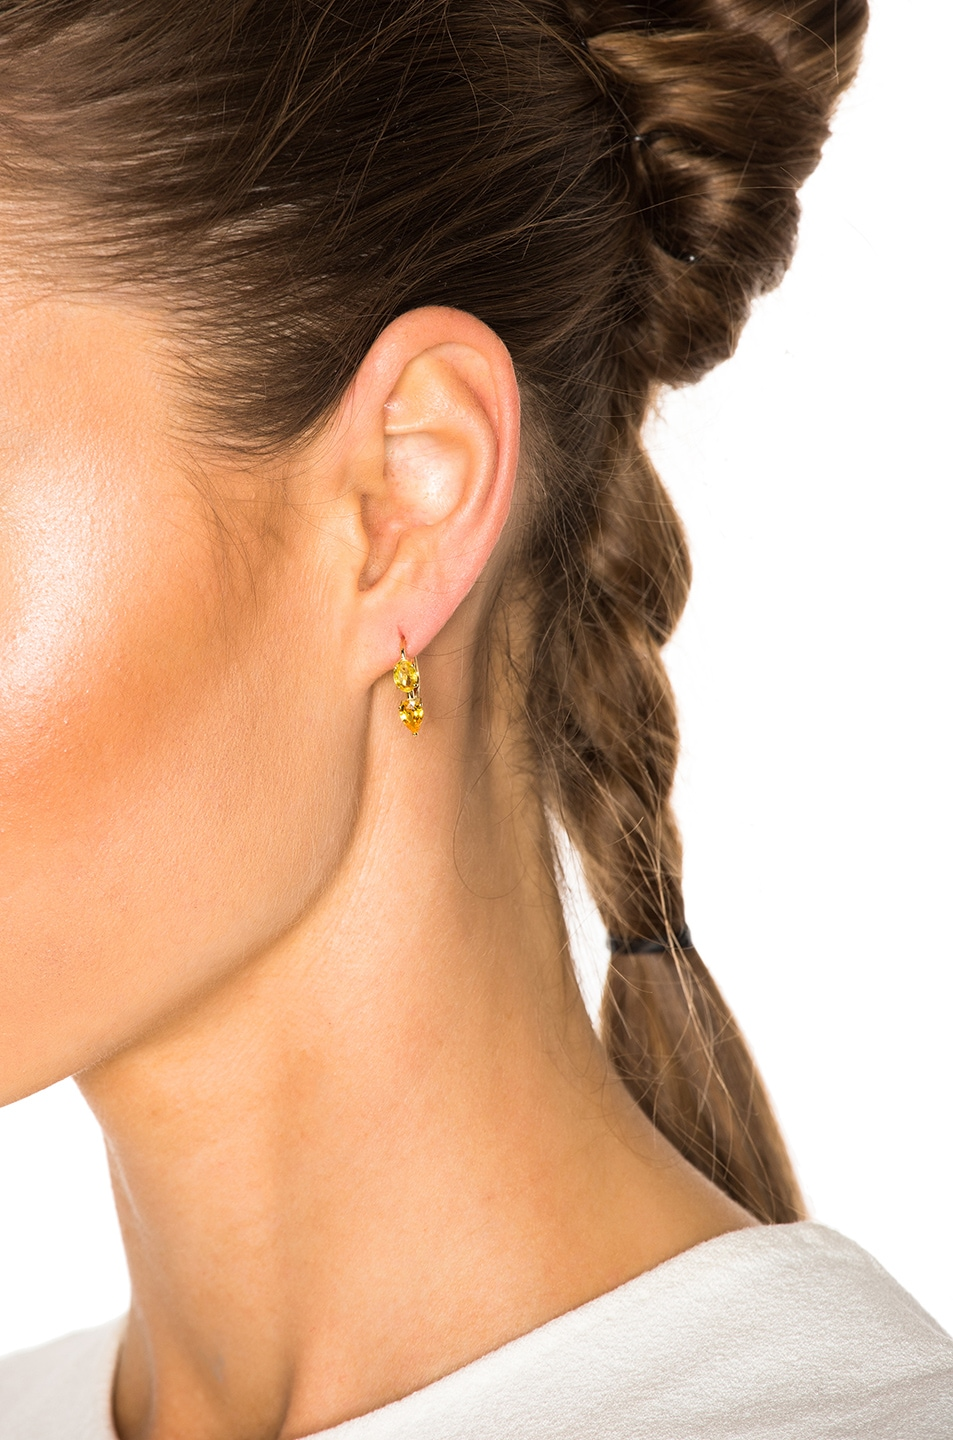 Image 4 of Ileana Makri Oval & Pear Earrings in Yellow Gold